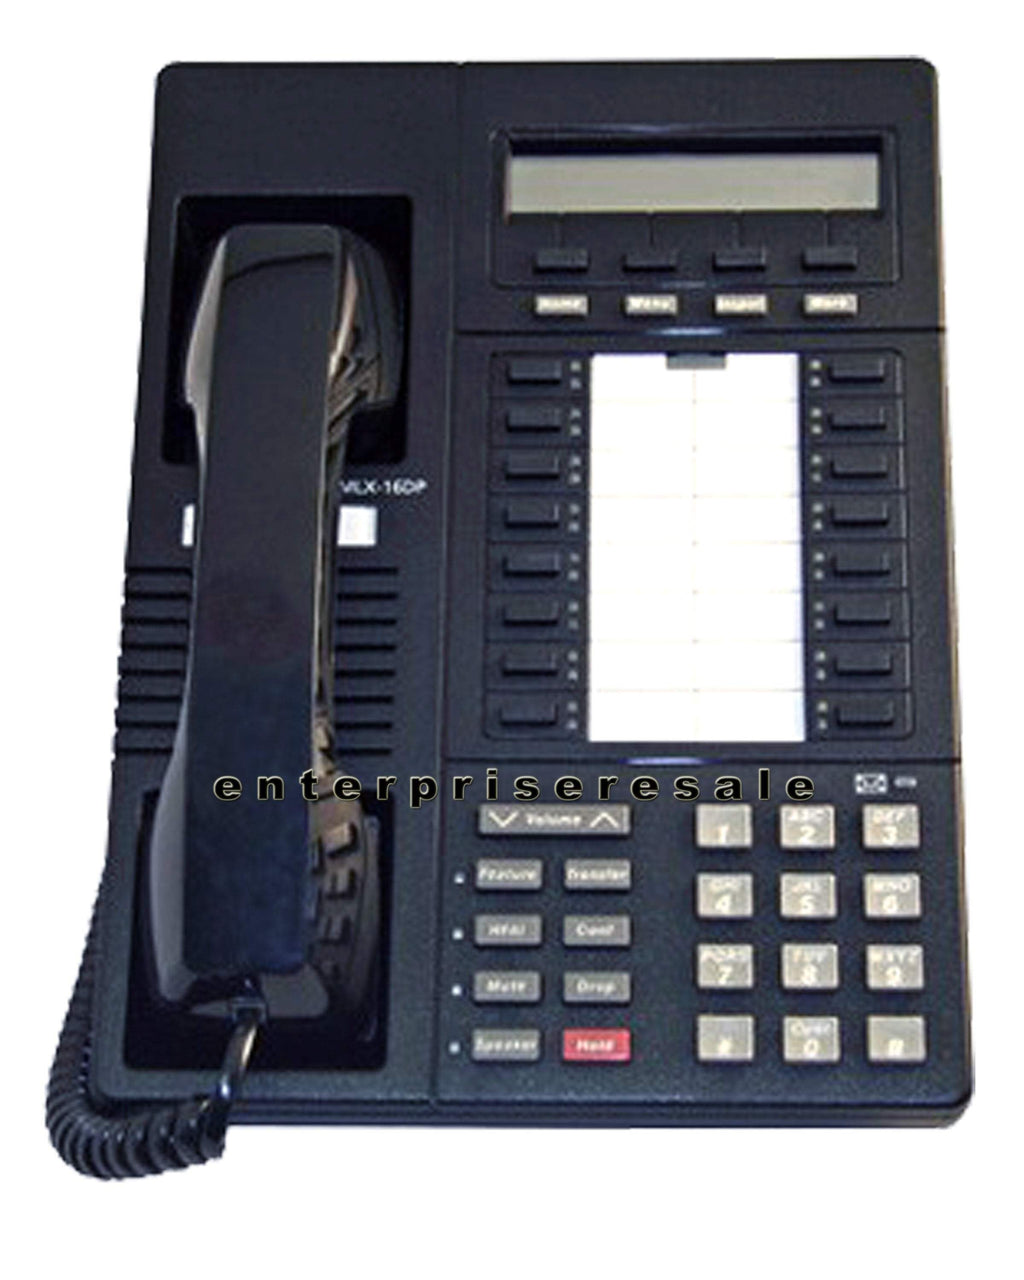 Lucent Business Phone Sets & Handsets Avaya Lucent MLX-16DP Black Phone Merlin Legend AT&T